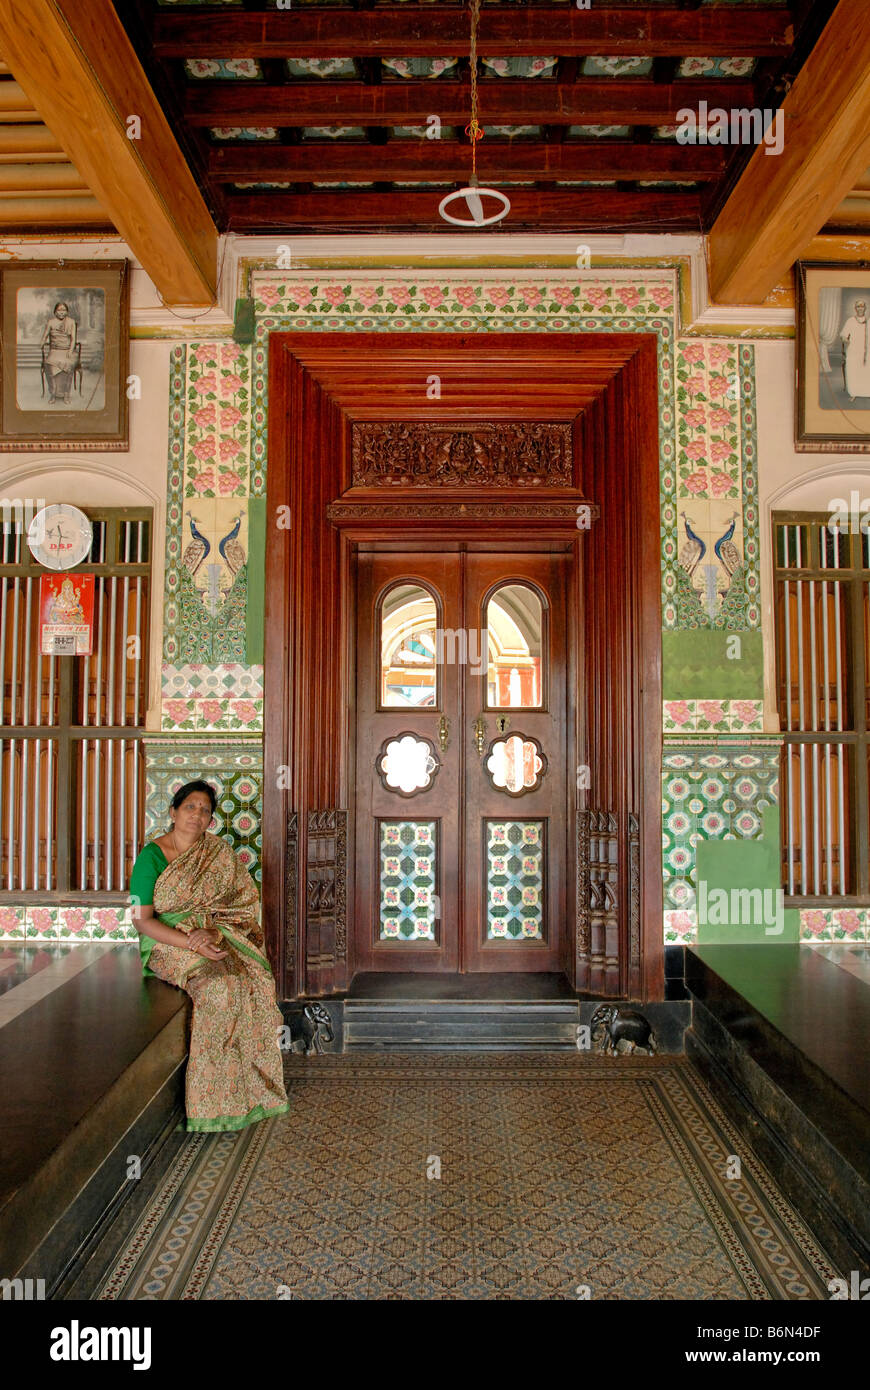 NATTUKOTTAI CHETTIAR HOUSE IN CHETTINAD, TAMIL NADU Stock Photo ...